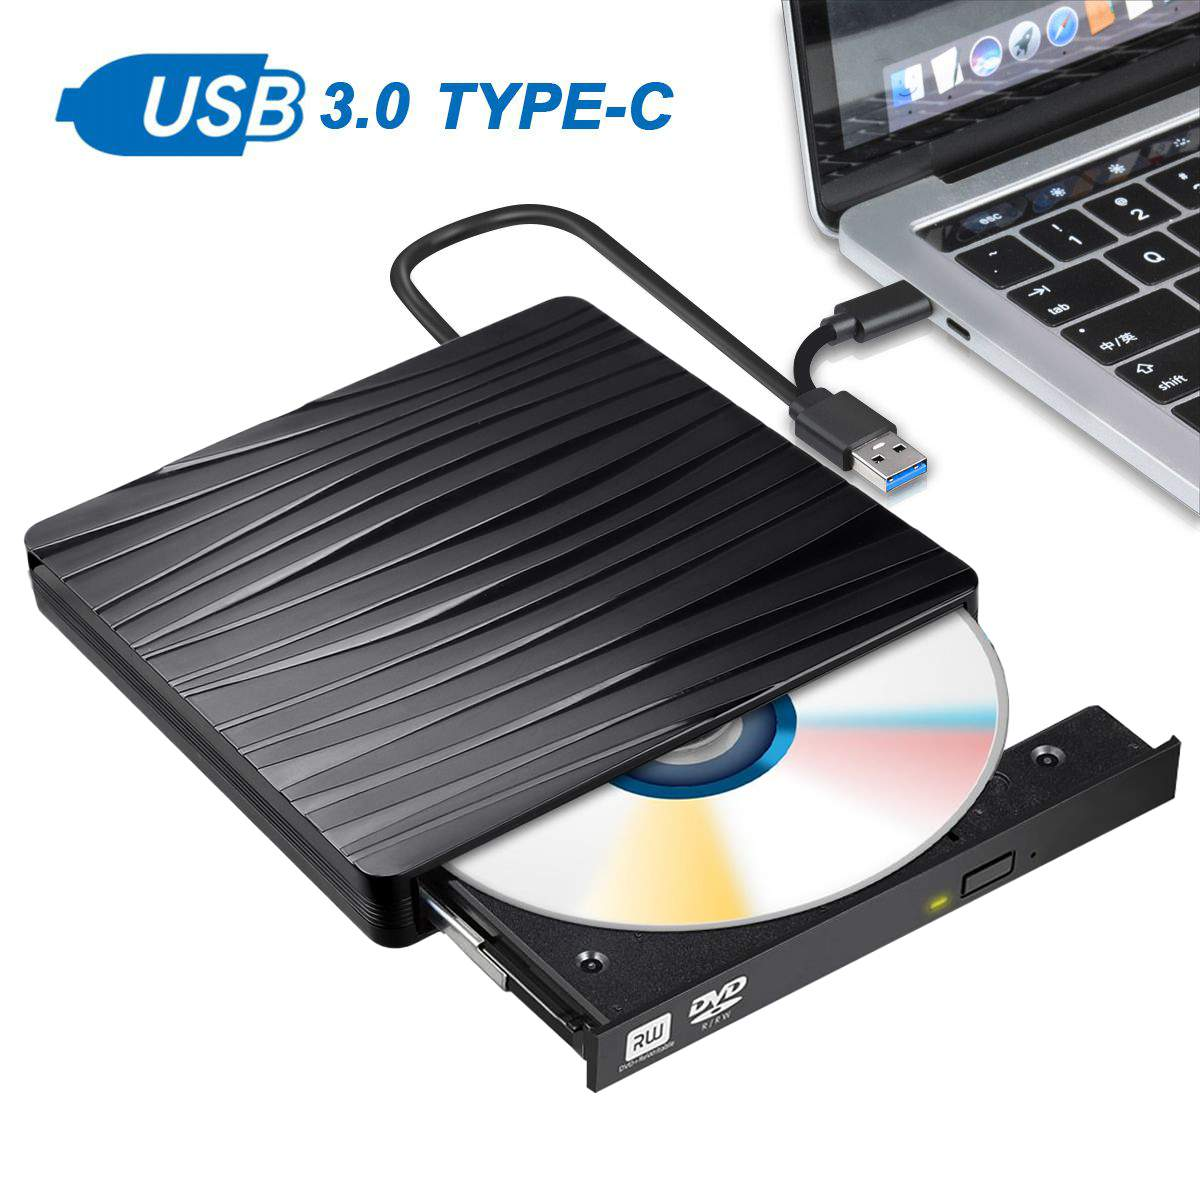 <font><b>USB</b></font> <font><b>3.0</b></font> Type-c External CD <font><b>DVD</b></font> Rom RW Player Burner <font><b>Drive</b></font> For MacBook Air ProS For iMac/Win8 Laptop Notebook PC Computer image